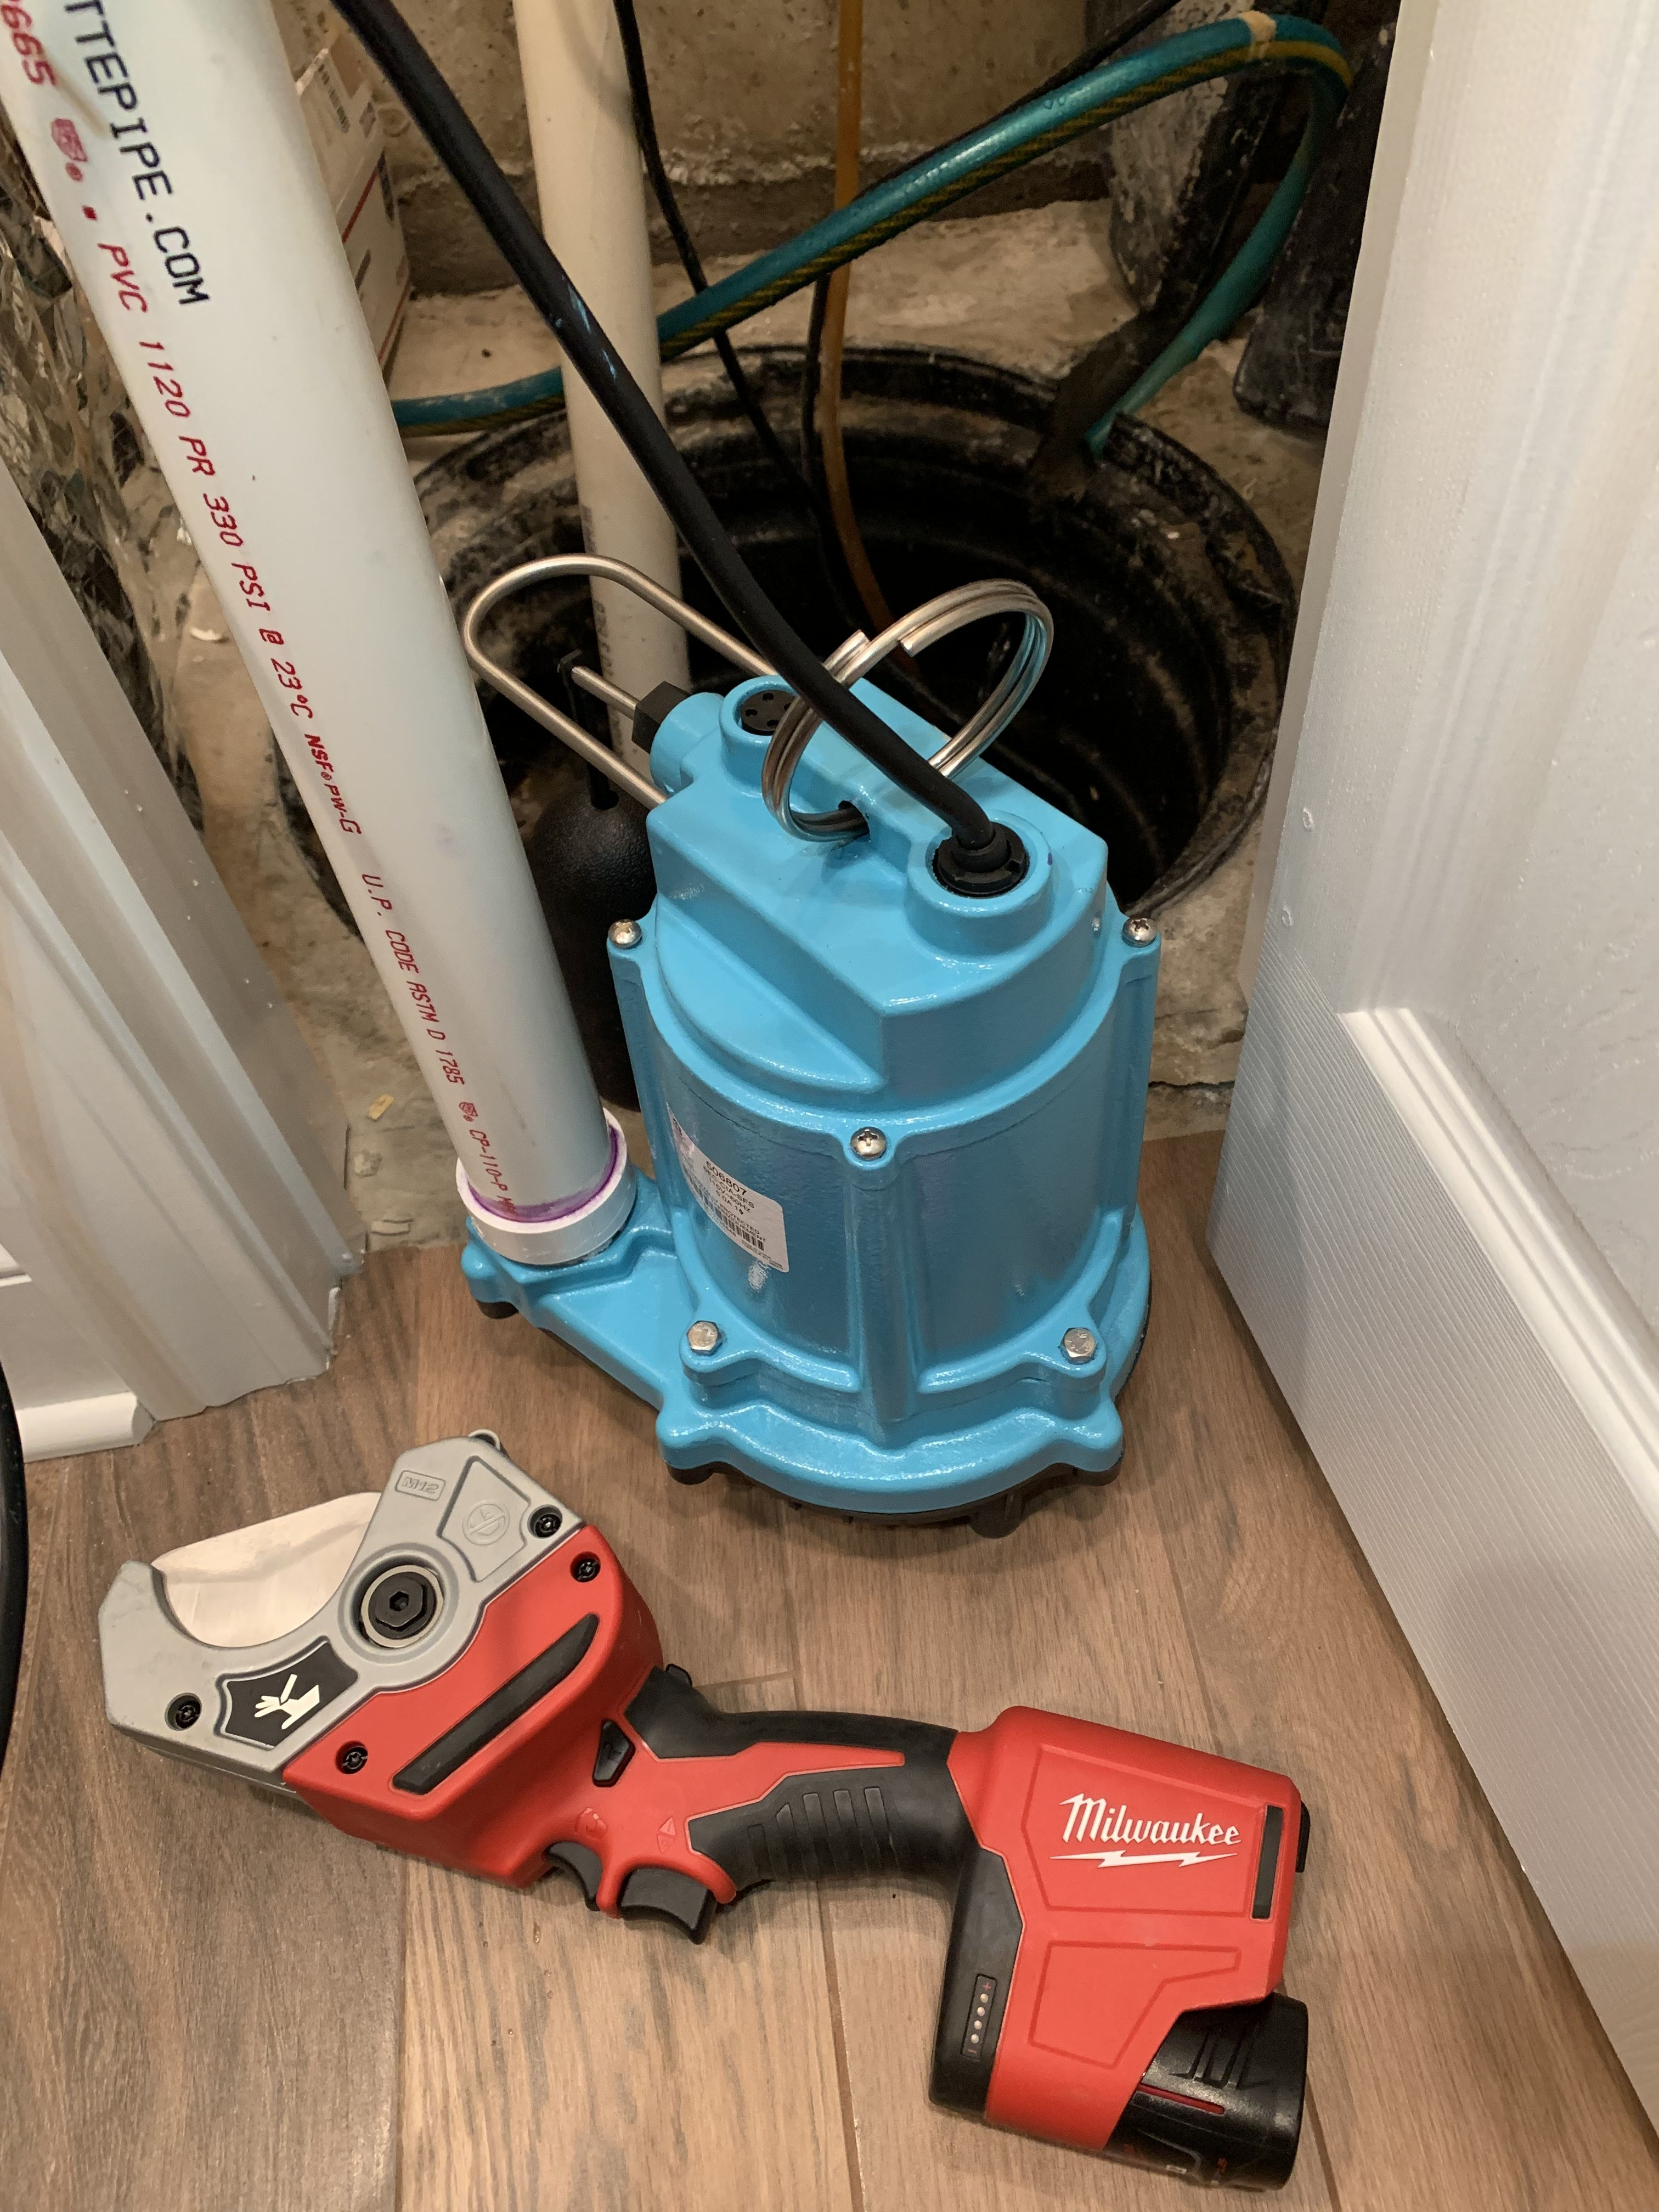 Sump Pump Replacement Installation With Little Giant Submersible Pump Basement Waterproofing Sump Pump Sump Pump Installation Submersible Pump